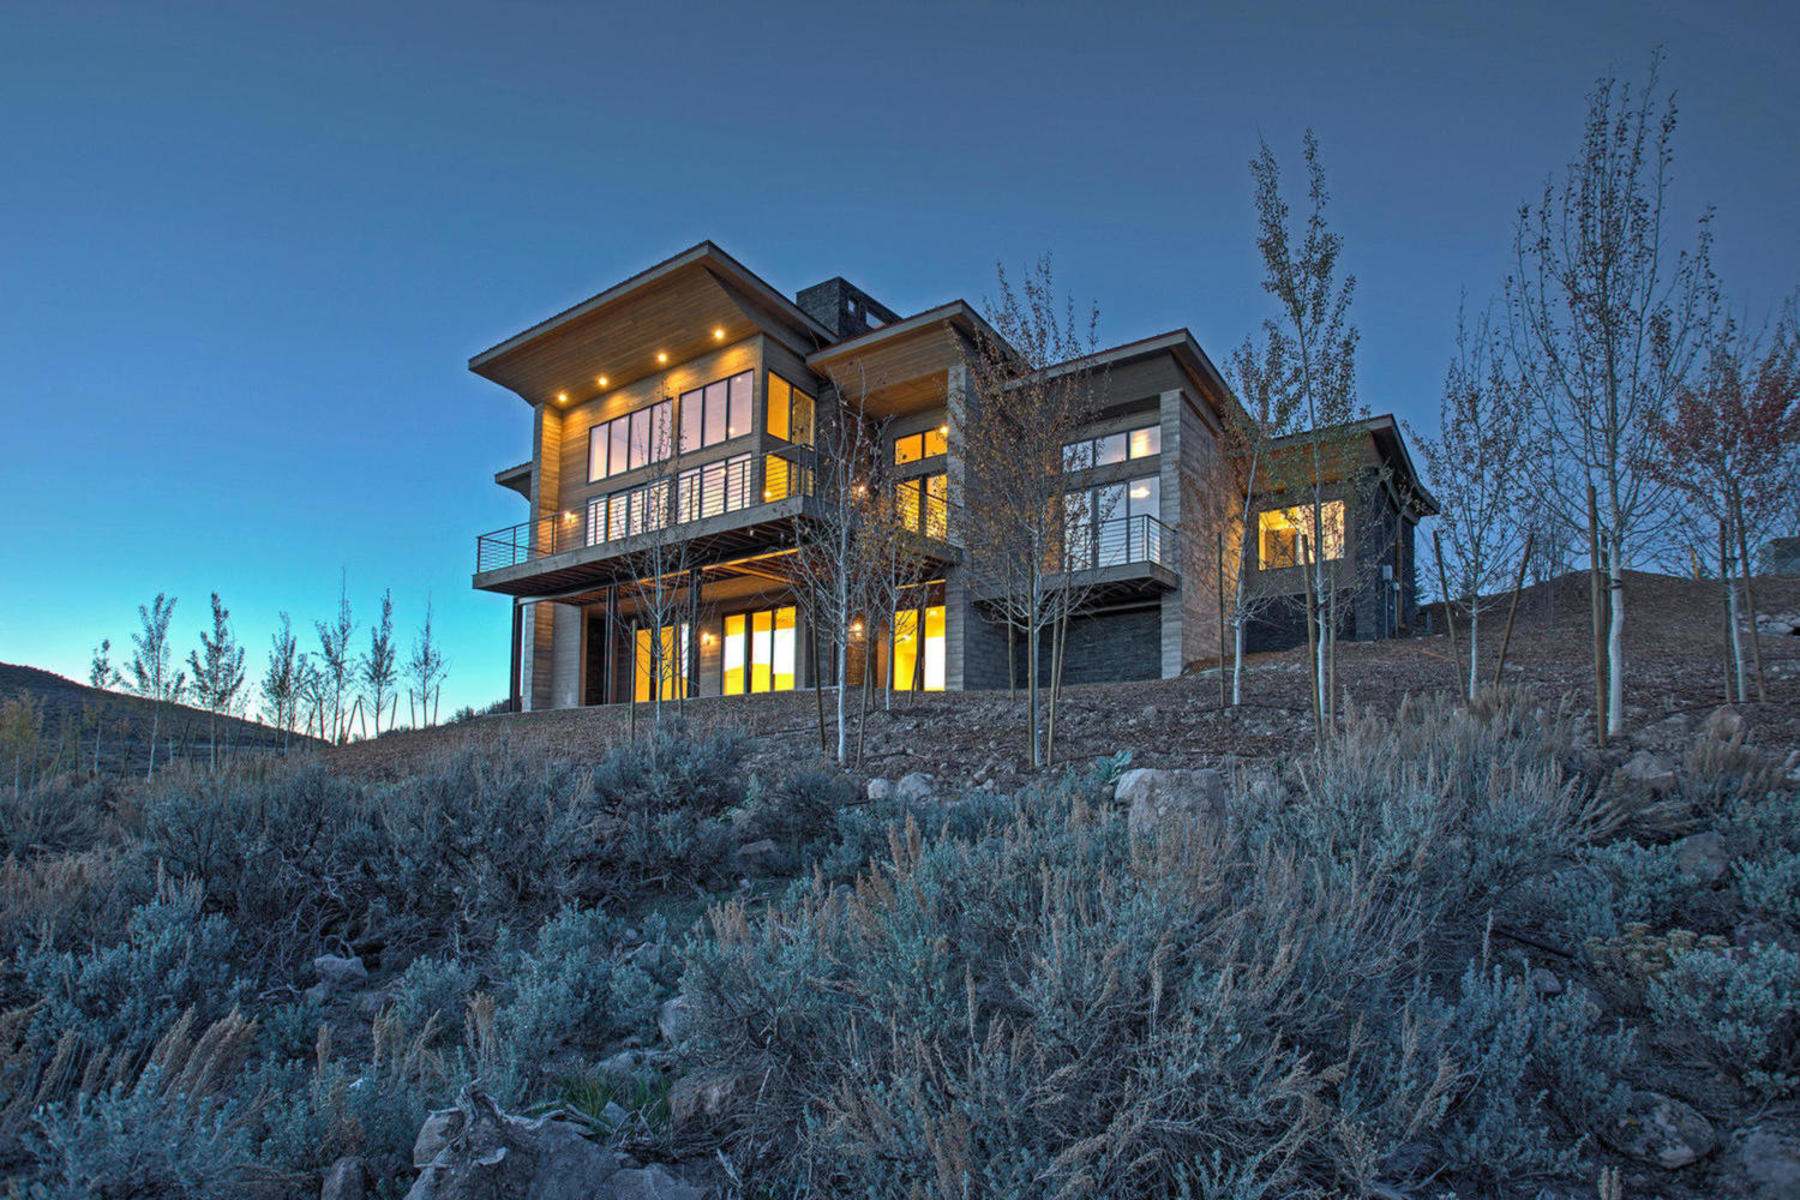 Single Family Home for Sale at Beautiful Nick Villa Looking Over Painted Valley Golf Course 6825 Golden Bear Loop West Lot #50, Park City, Utah, 84098 United States